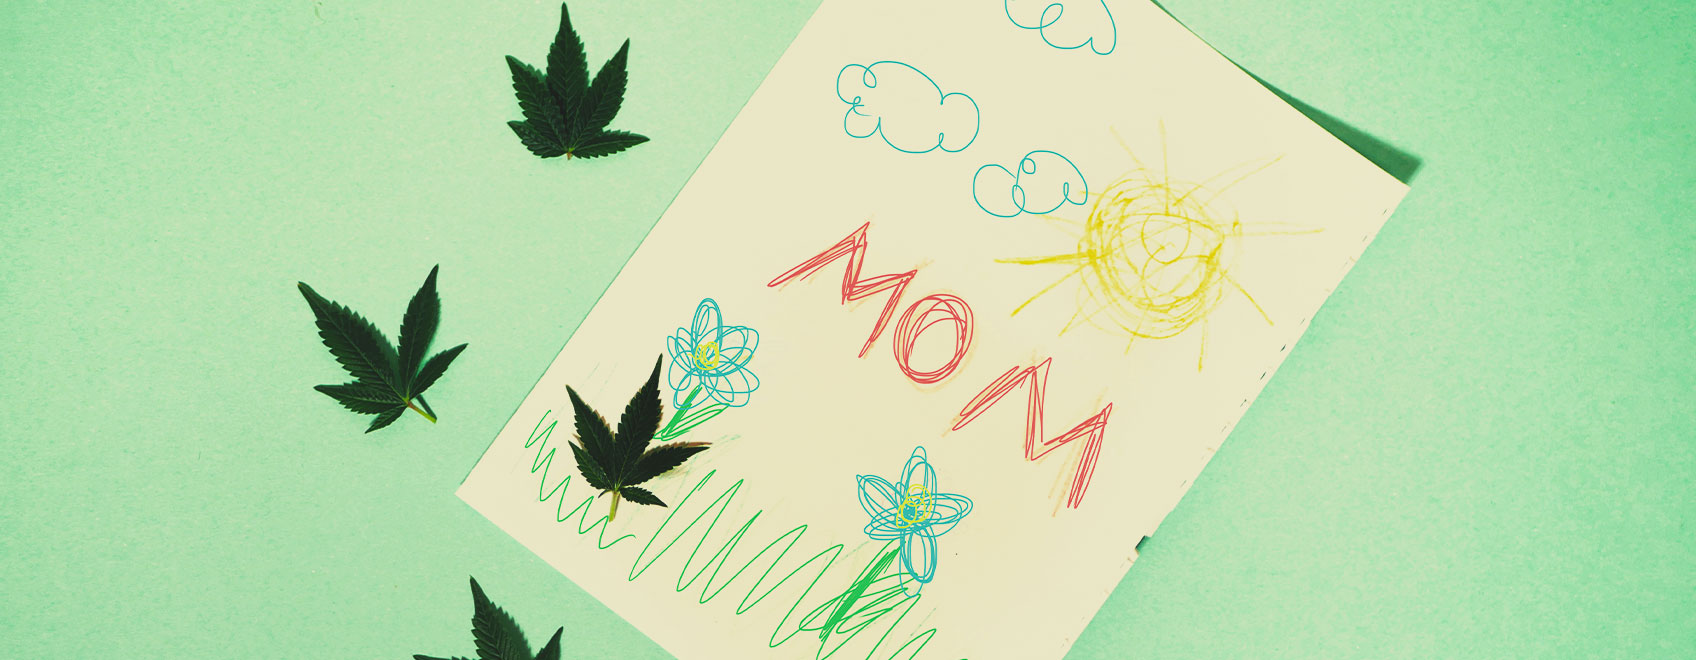 What is the most valuable thing about cannabis that our kids should learn from us?